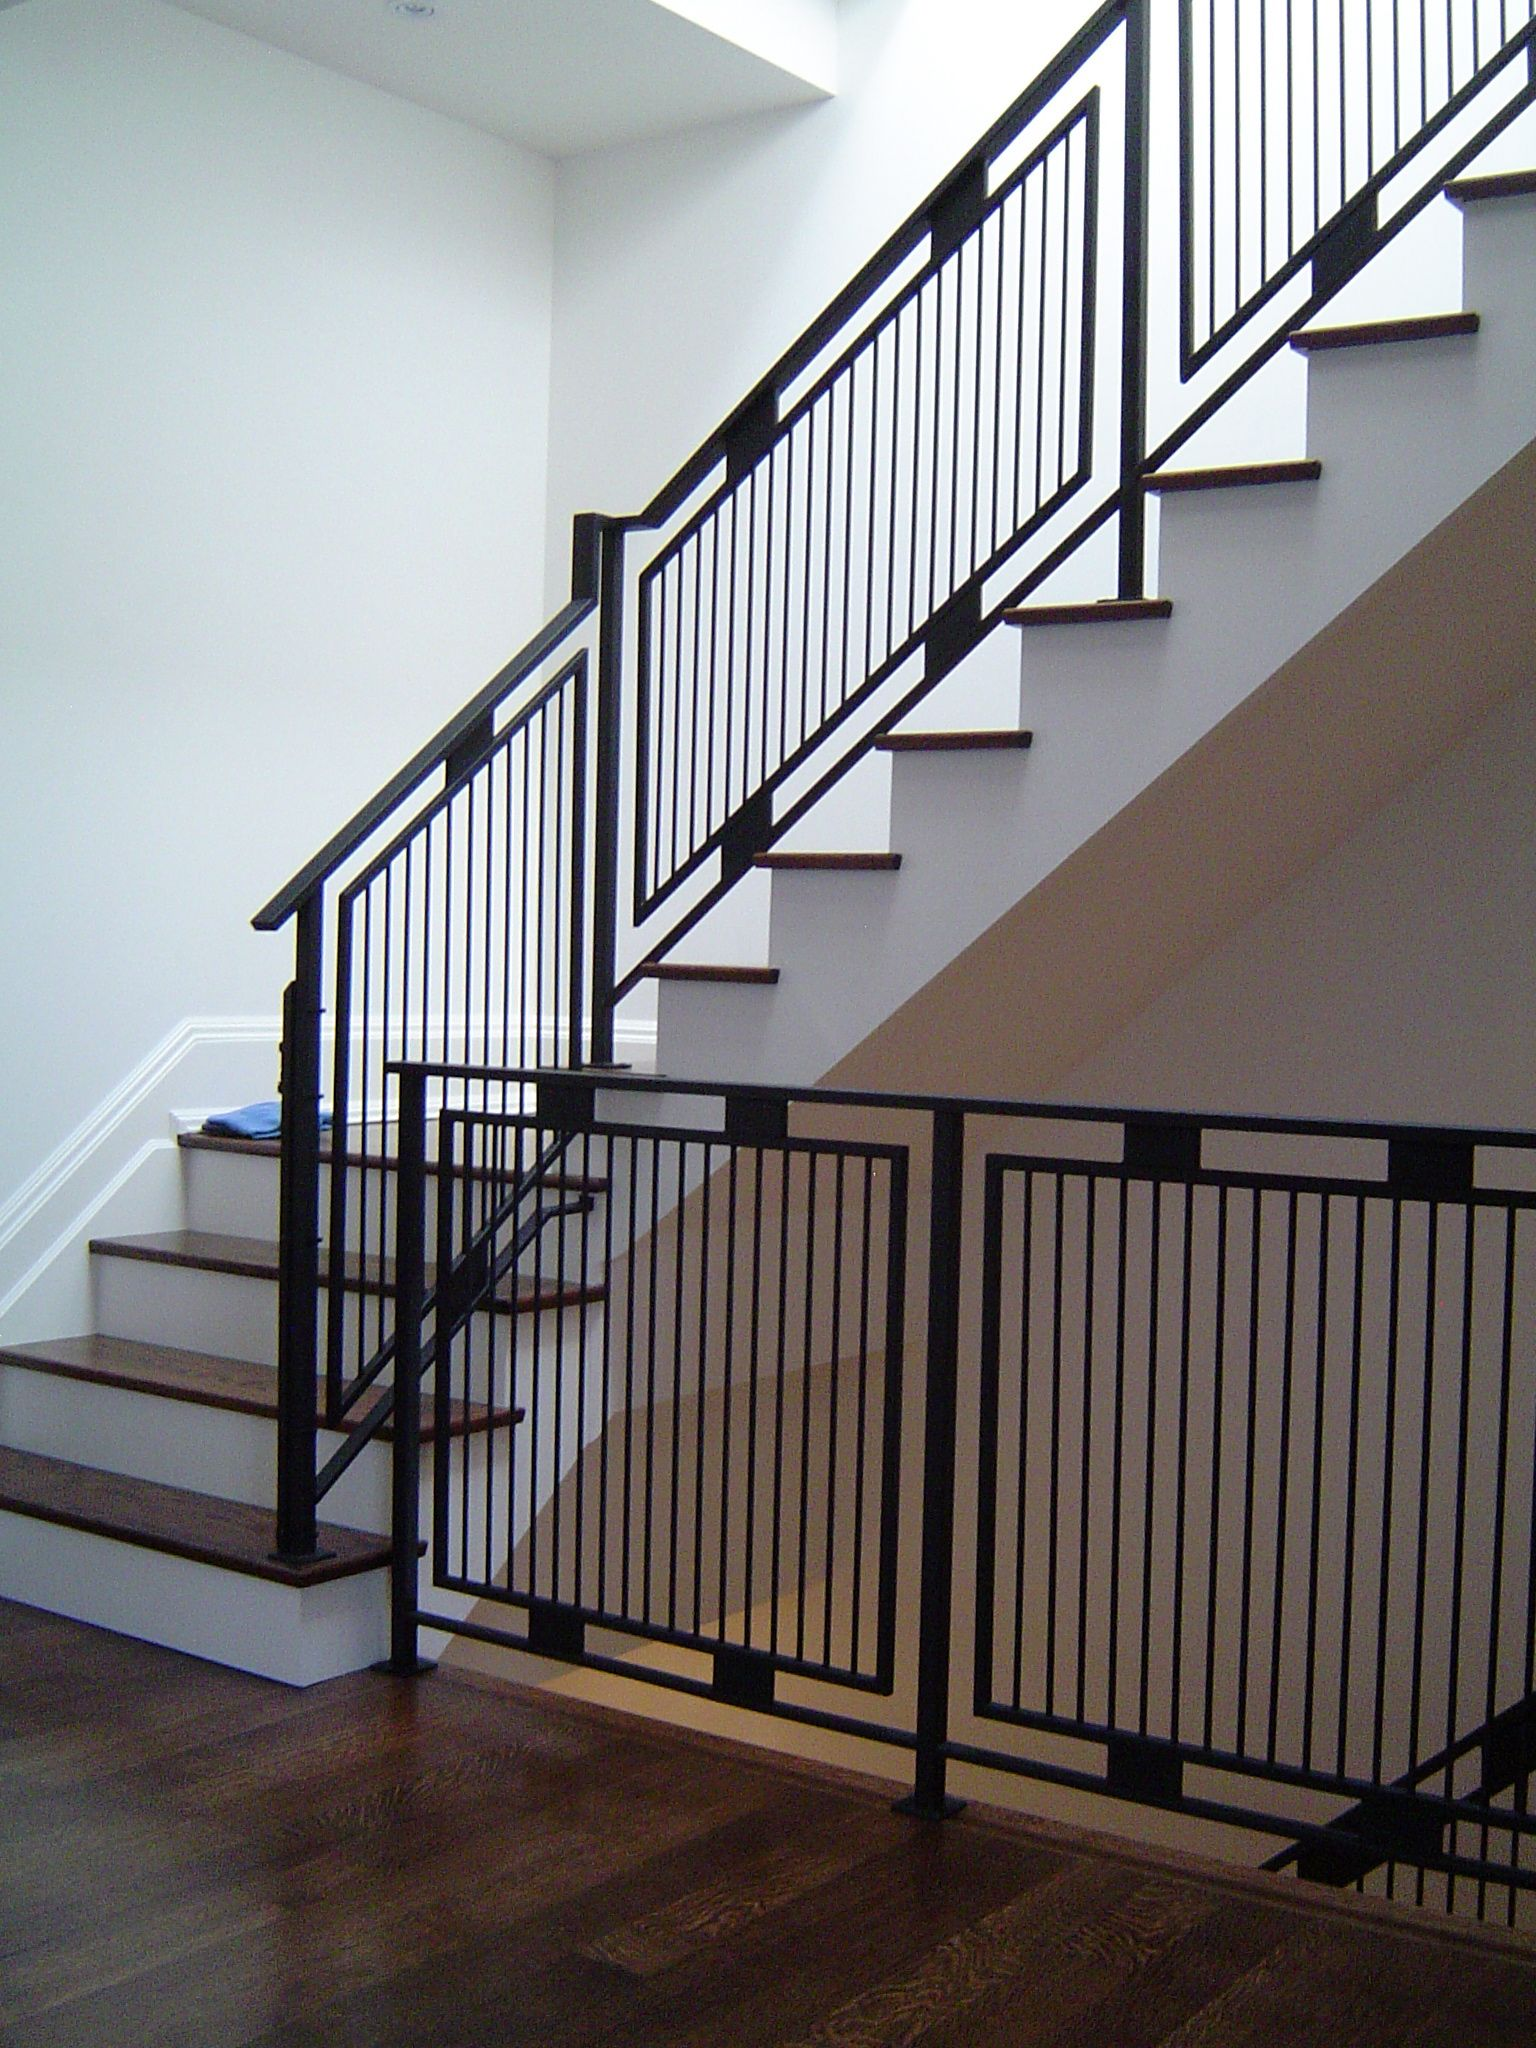 Simple Stairs Design White Walls And Black Railing Quot Thesteelworks Ca